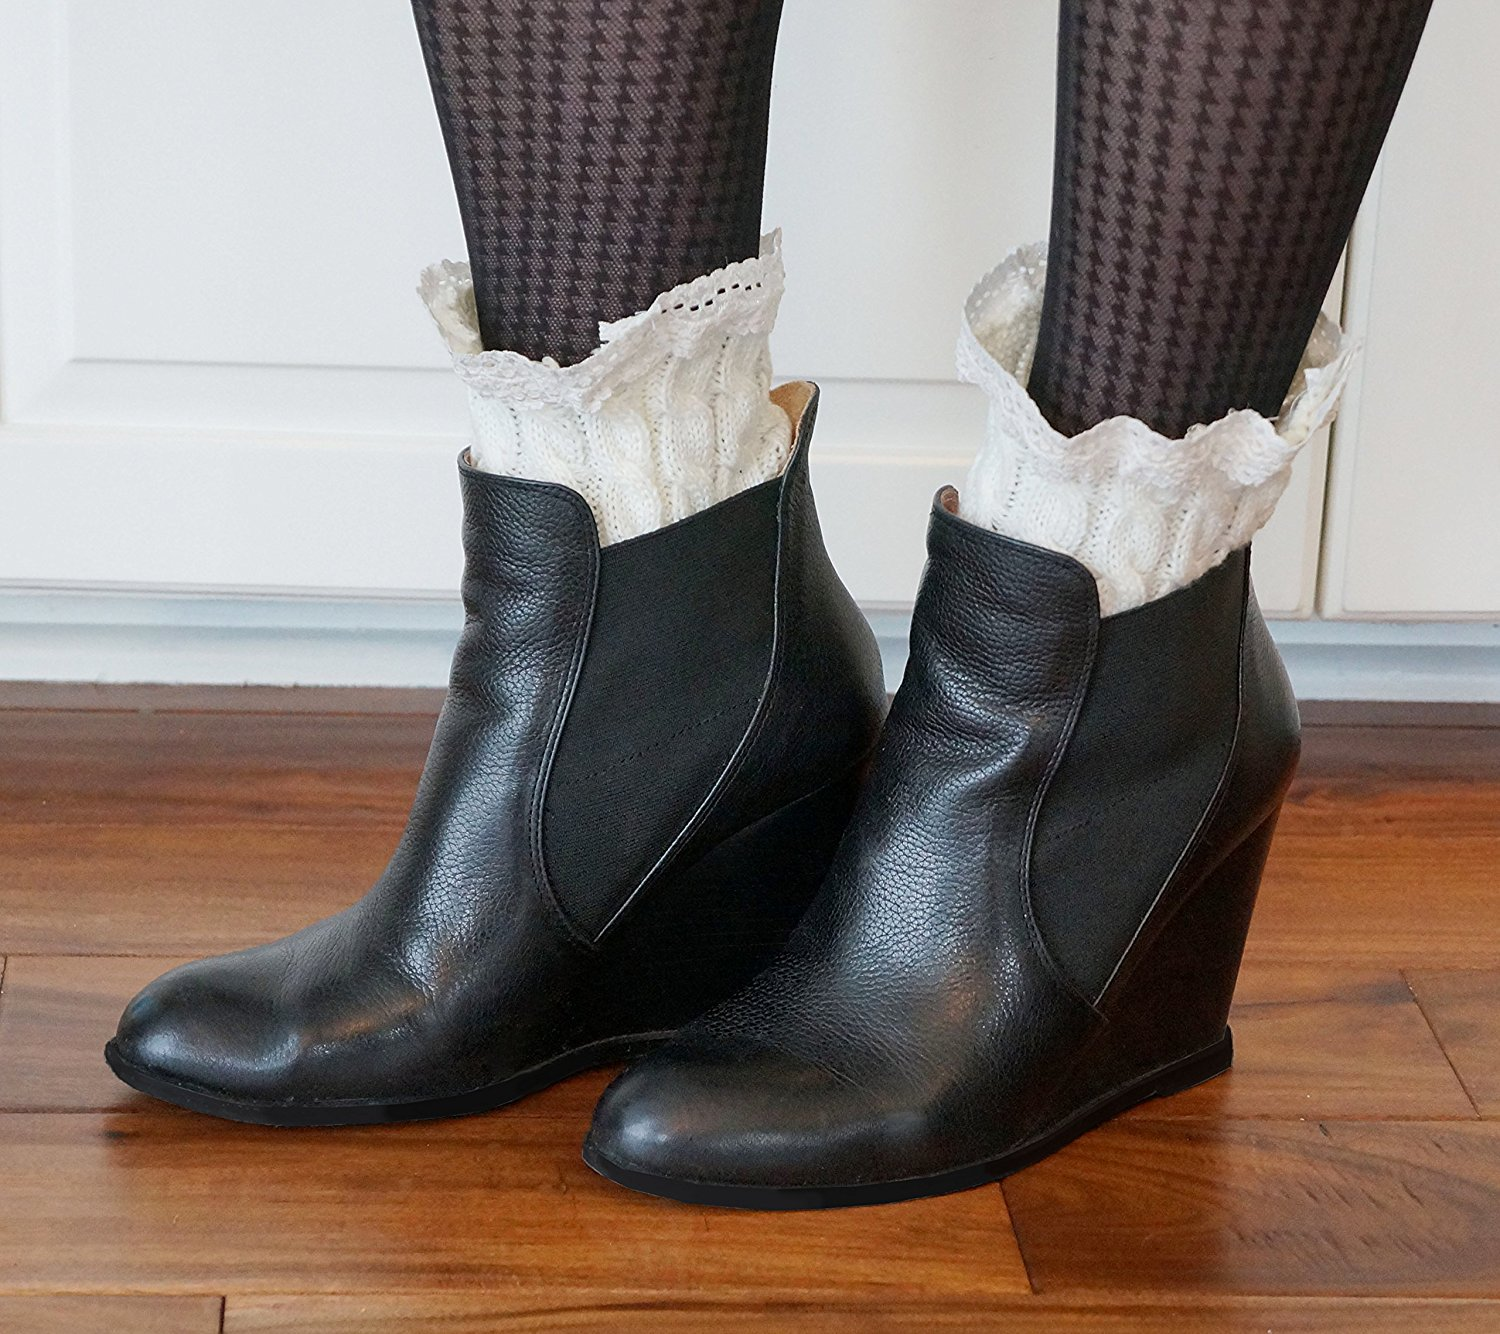 Boot Cuffs: Cable Knit and Lace Toppers for Boots, Boot Socks, Boot Cuff, Leg Warmers (One Pair) (Cream)